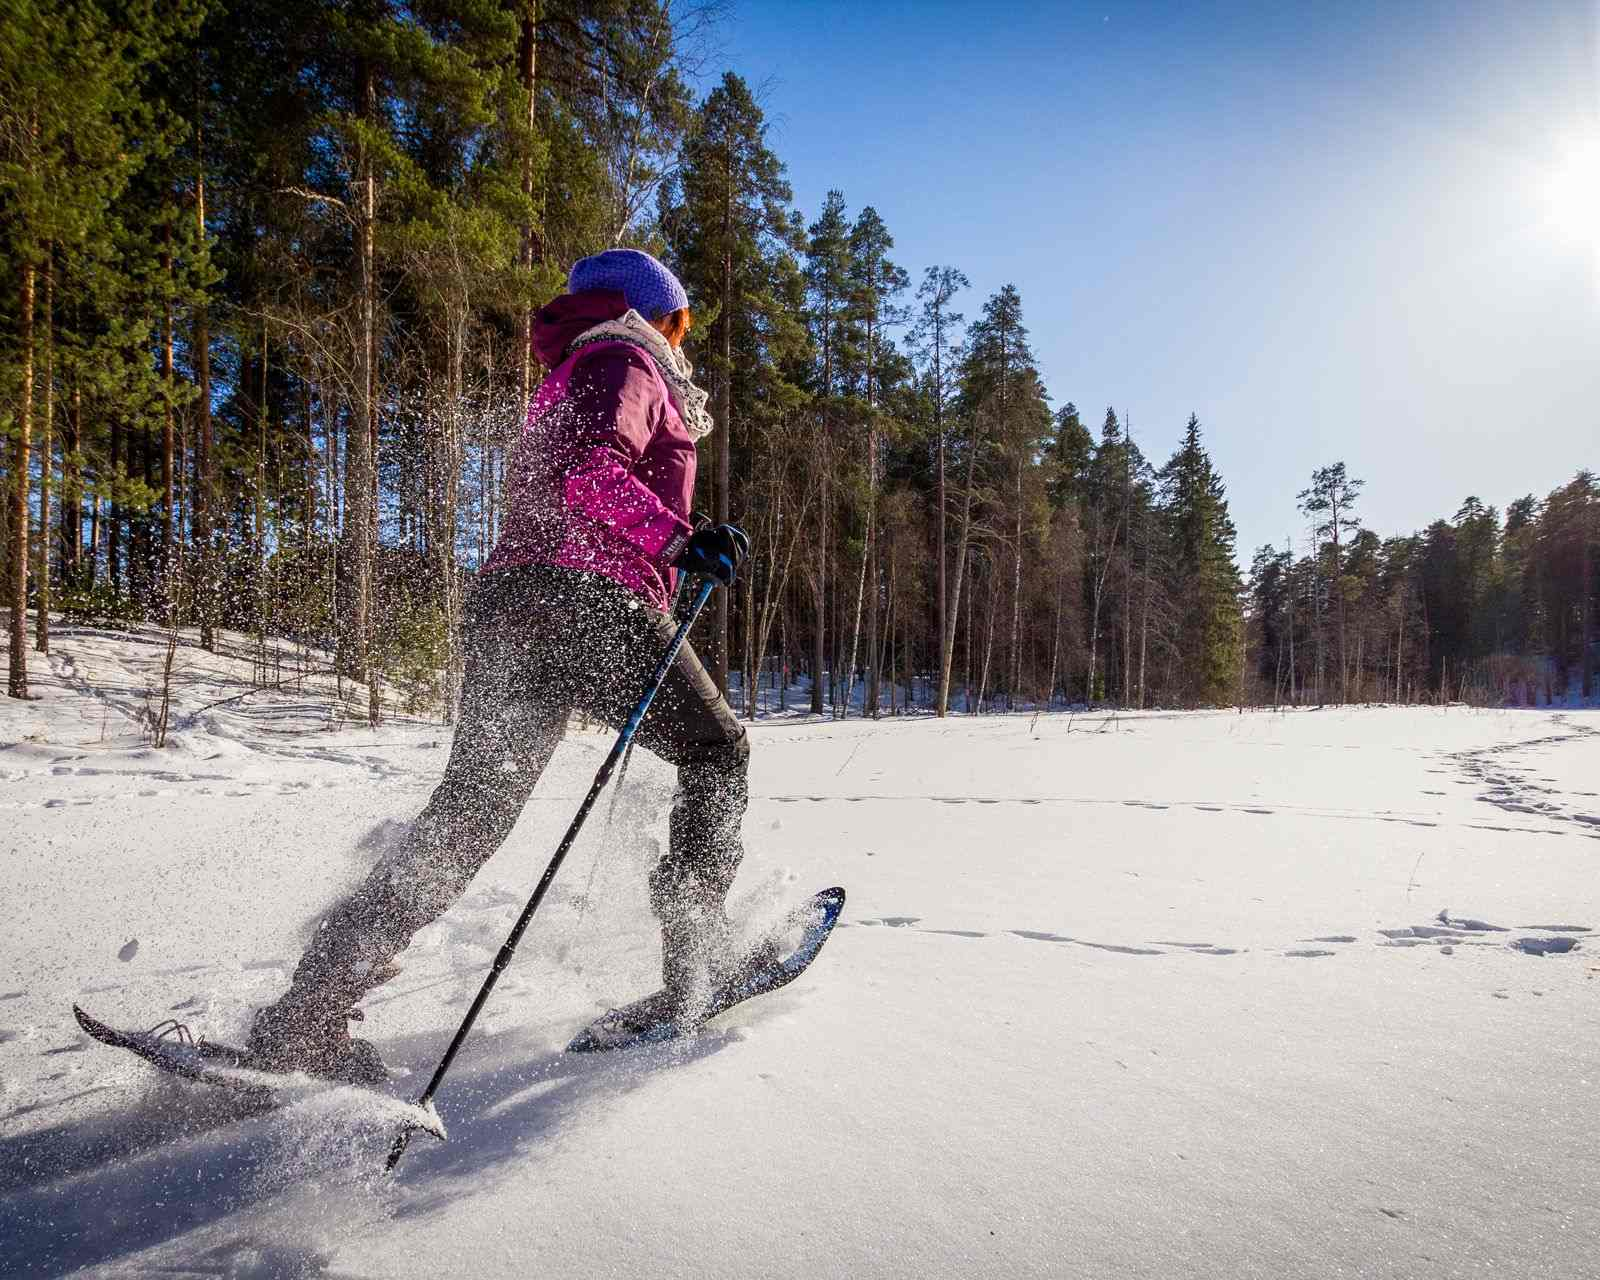 Snowshoeing is a fun winter activity near the Cascade Lakes.